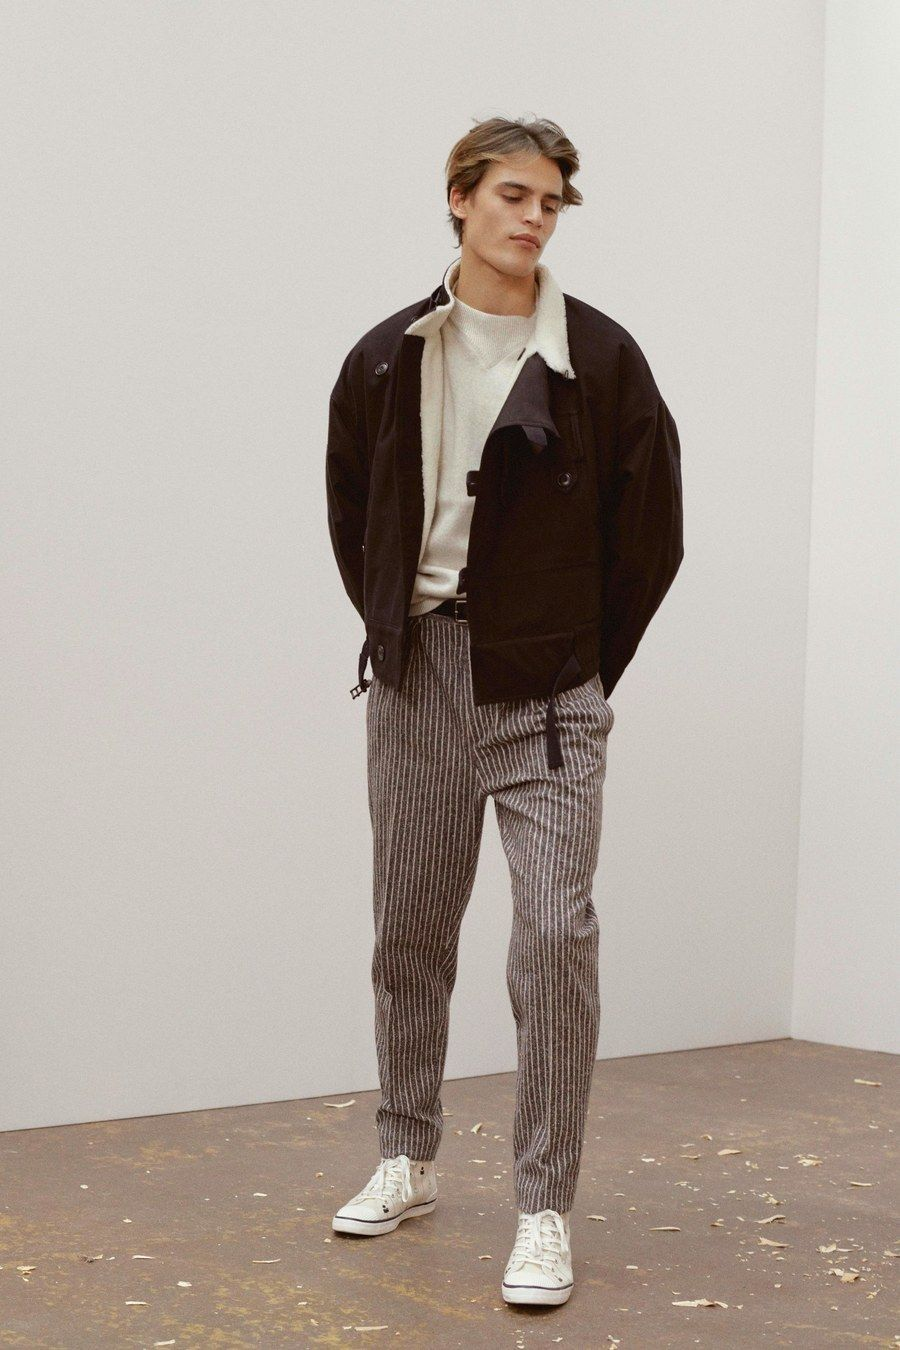 Isabel Marant Fall 2019 Menswear collection, runway looks, beauty, models, and reviews. #mensfashion